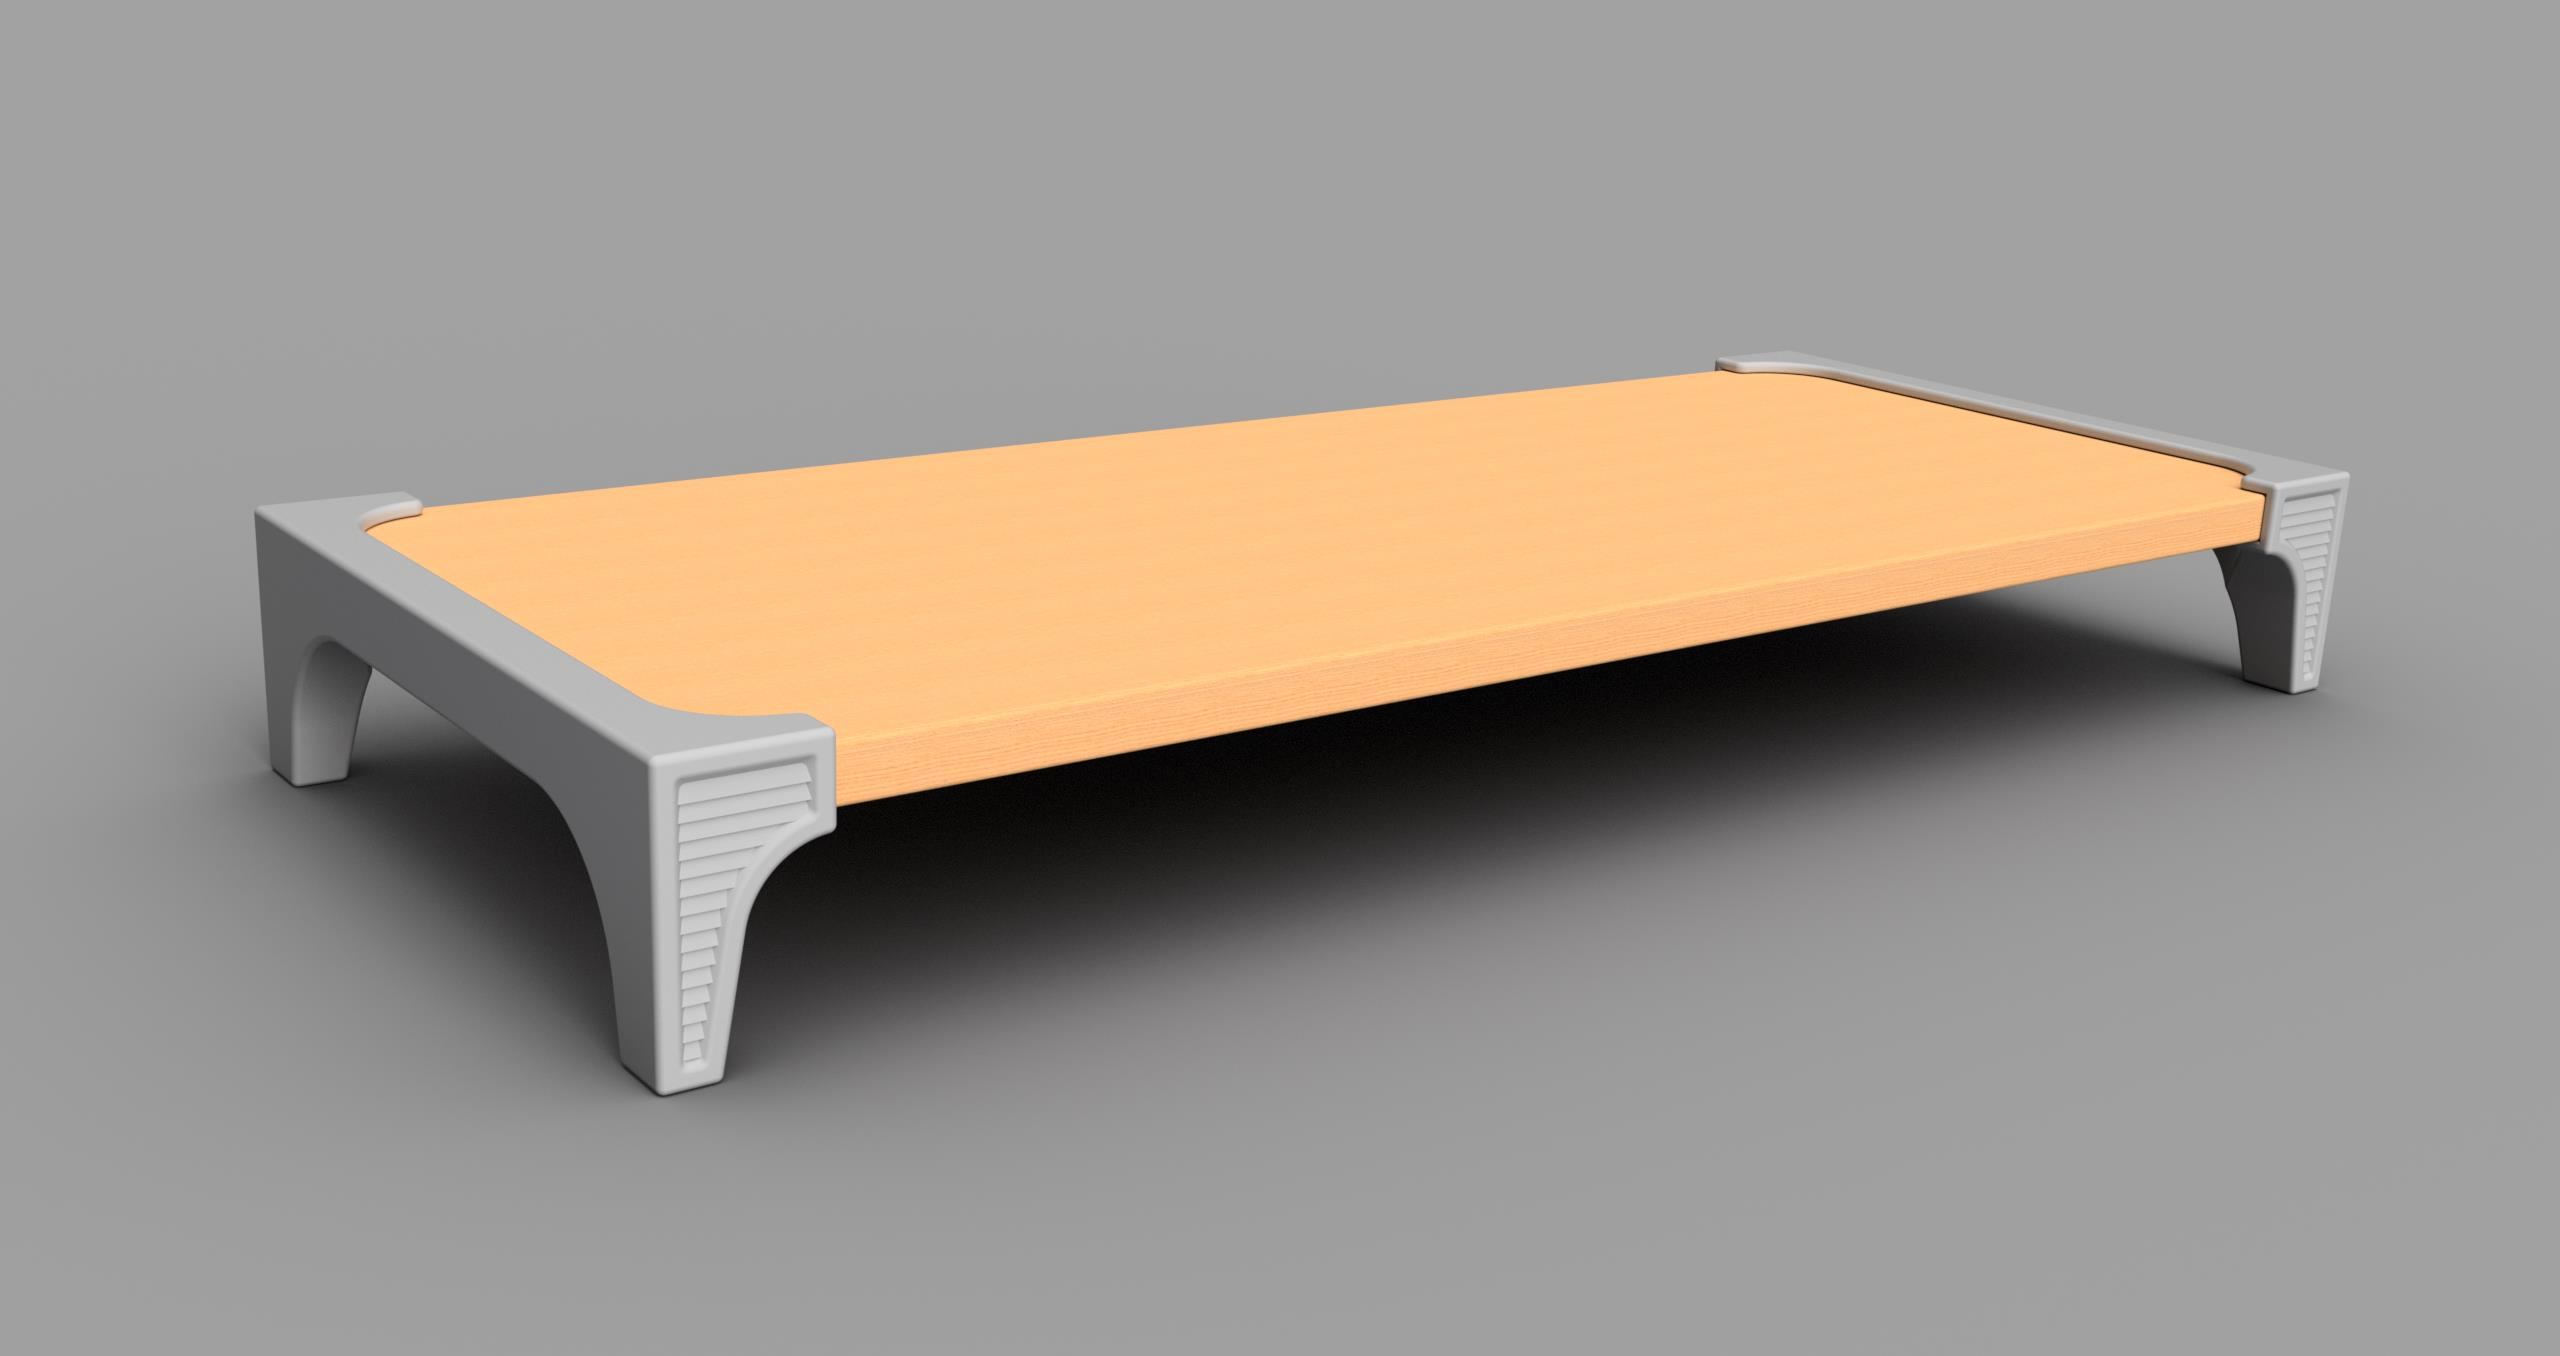 Monitor Stand Ikea Monitor Stand Using An Ikea Laiva Shelf By Vic66 Thingiverse